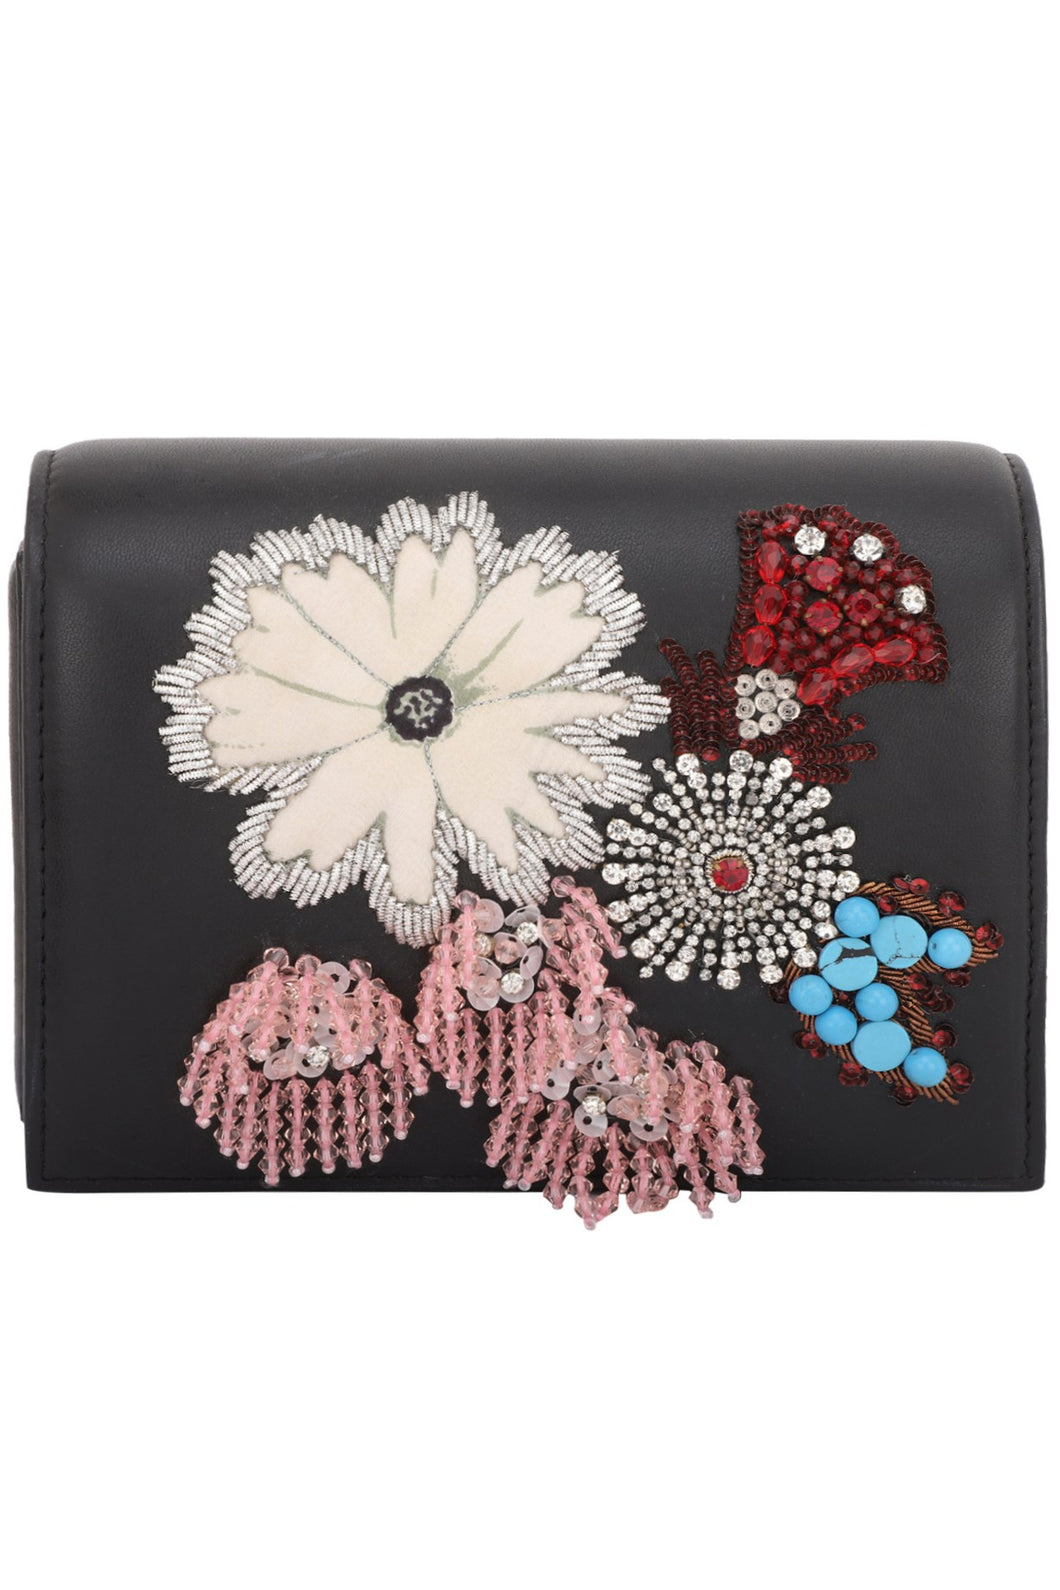 30606aa939 Studio Accessories Black base Multicolor floral Hand beaded leather clutch  bag